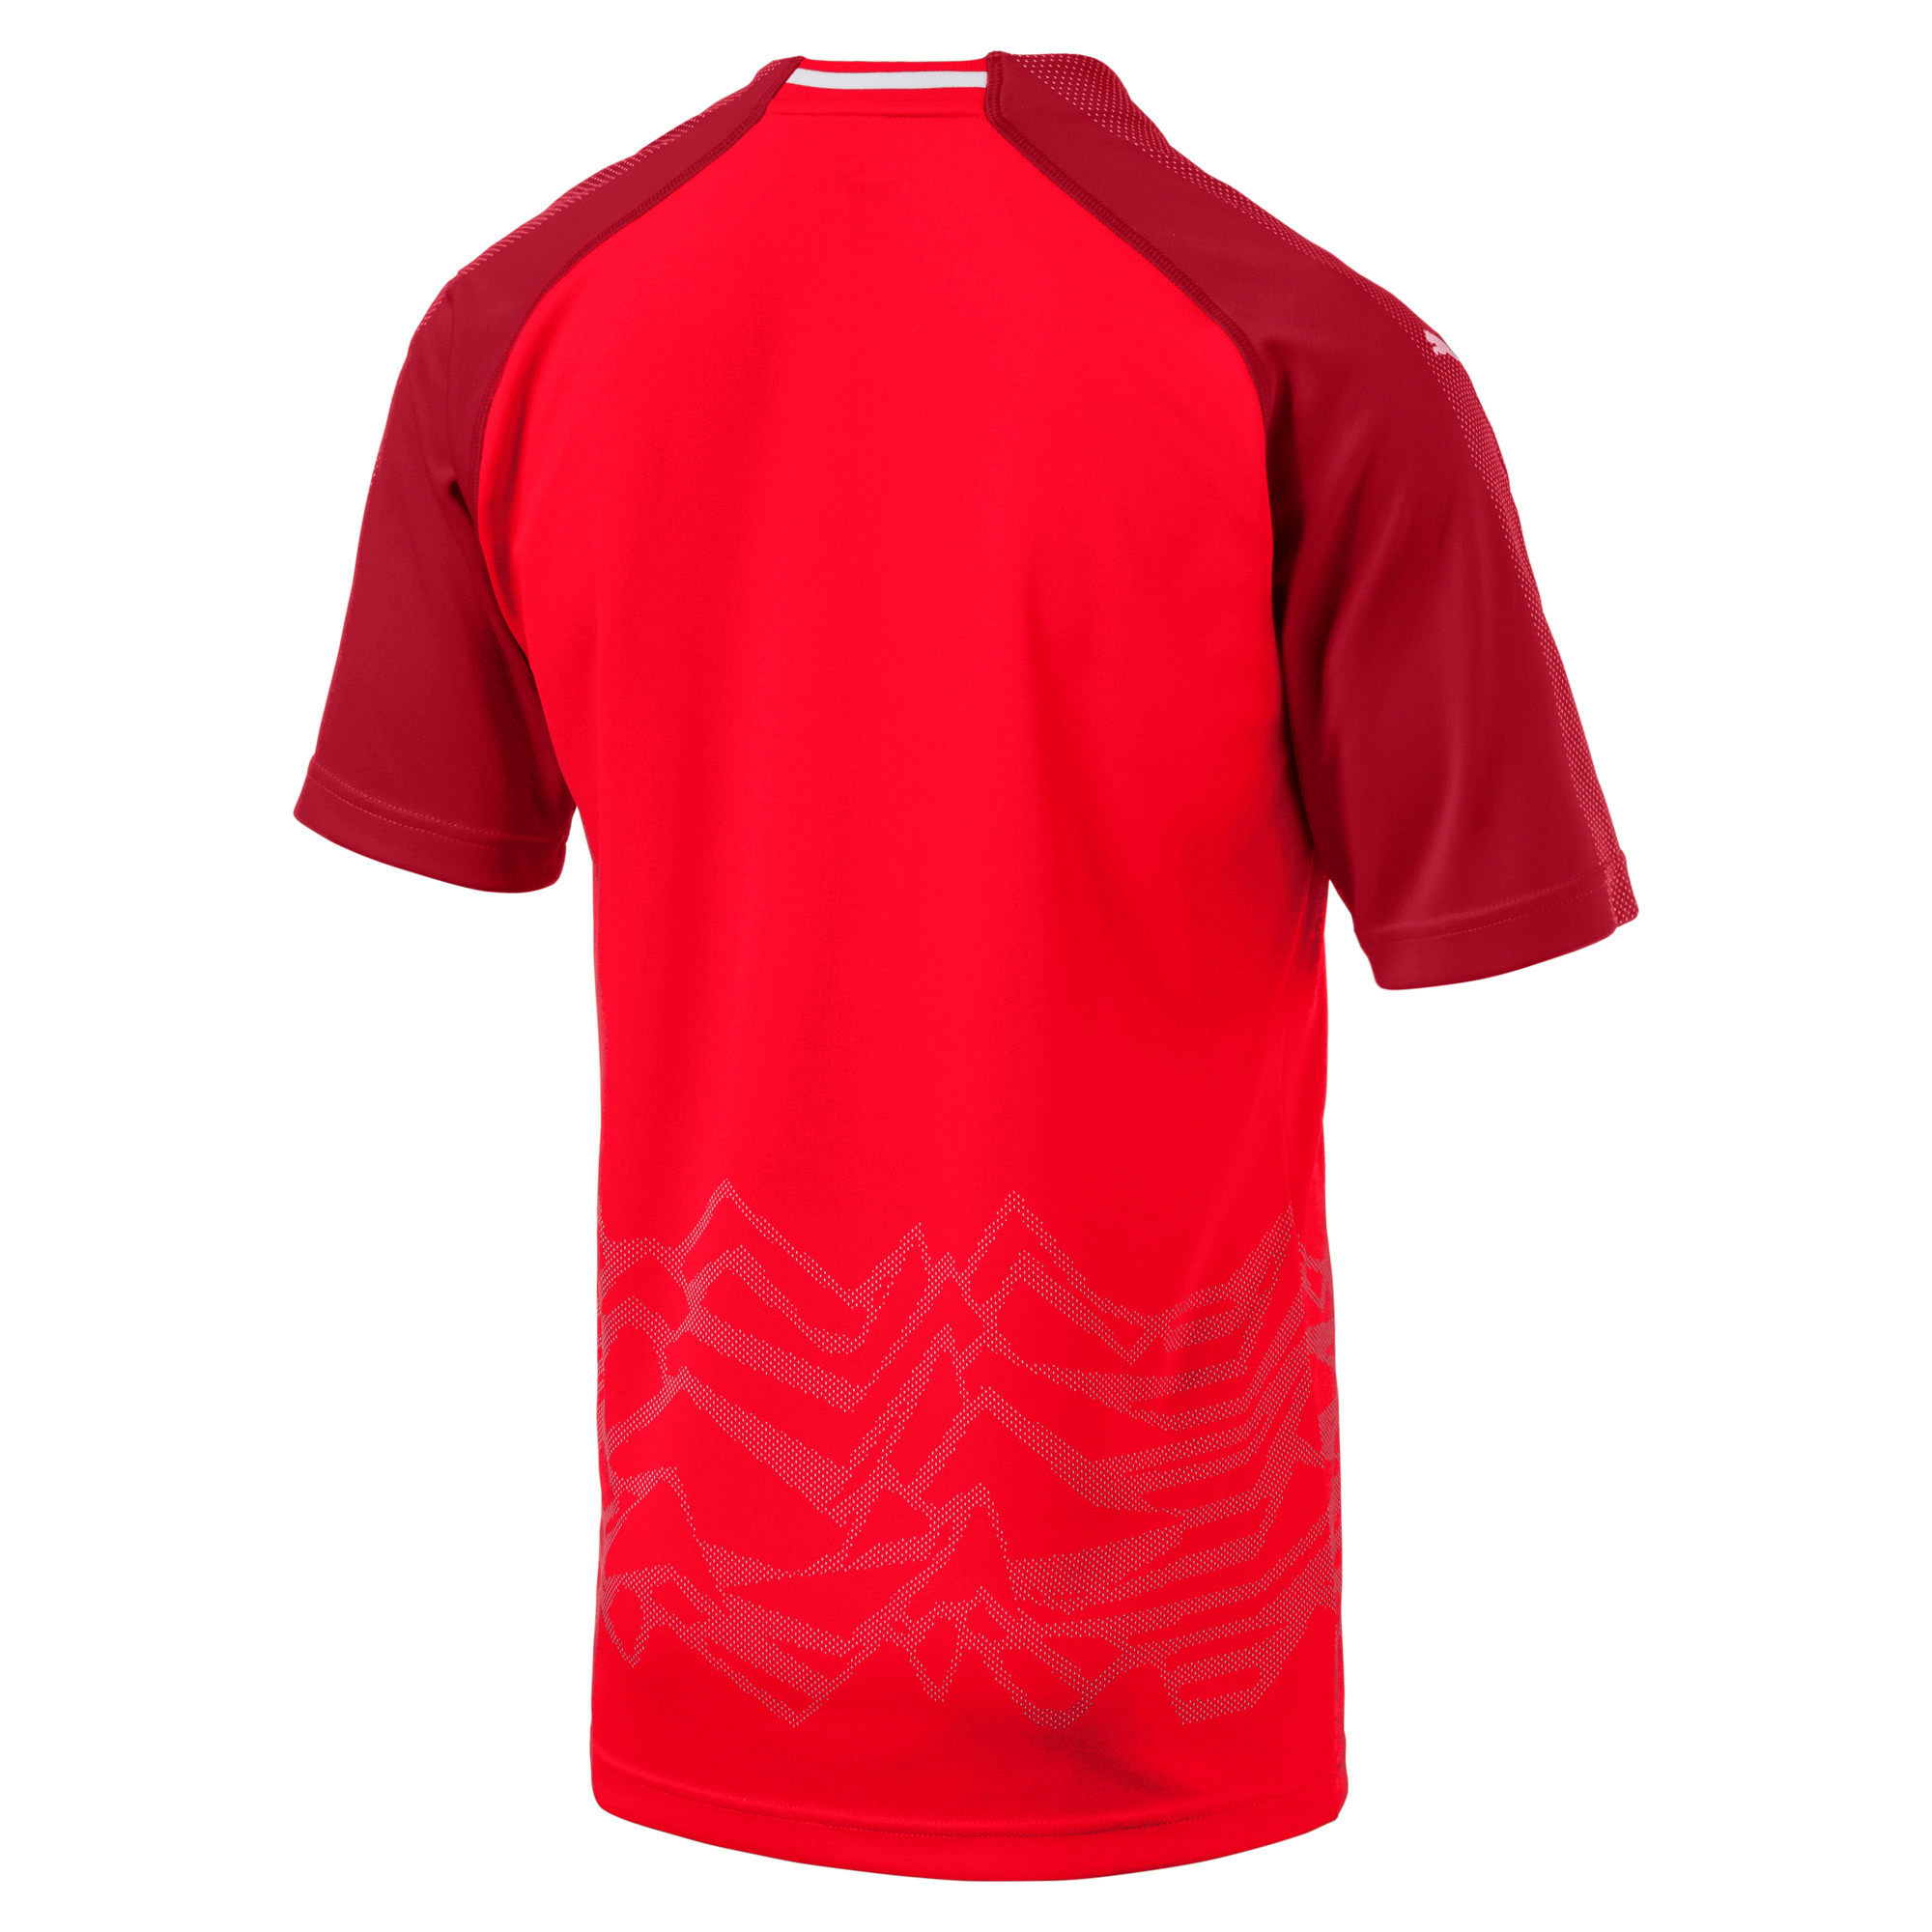 Thumbnail 2 of Replica thuisshirt Oostenrijk, Puma Red-Chili Pepper, medium